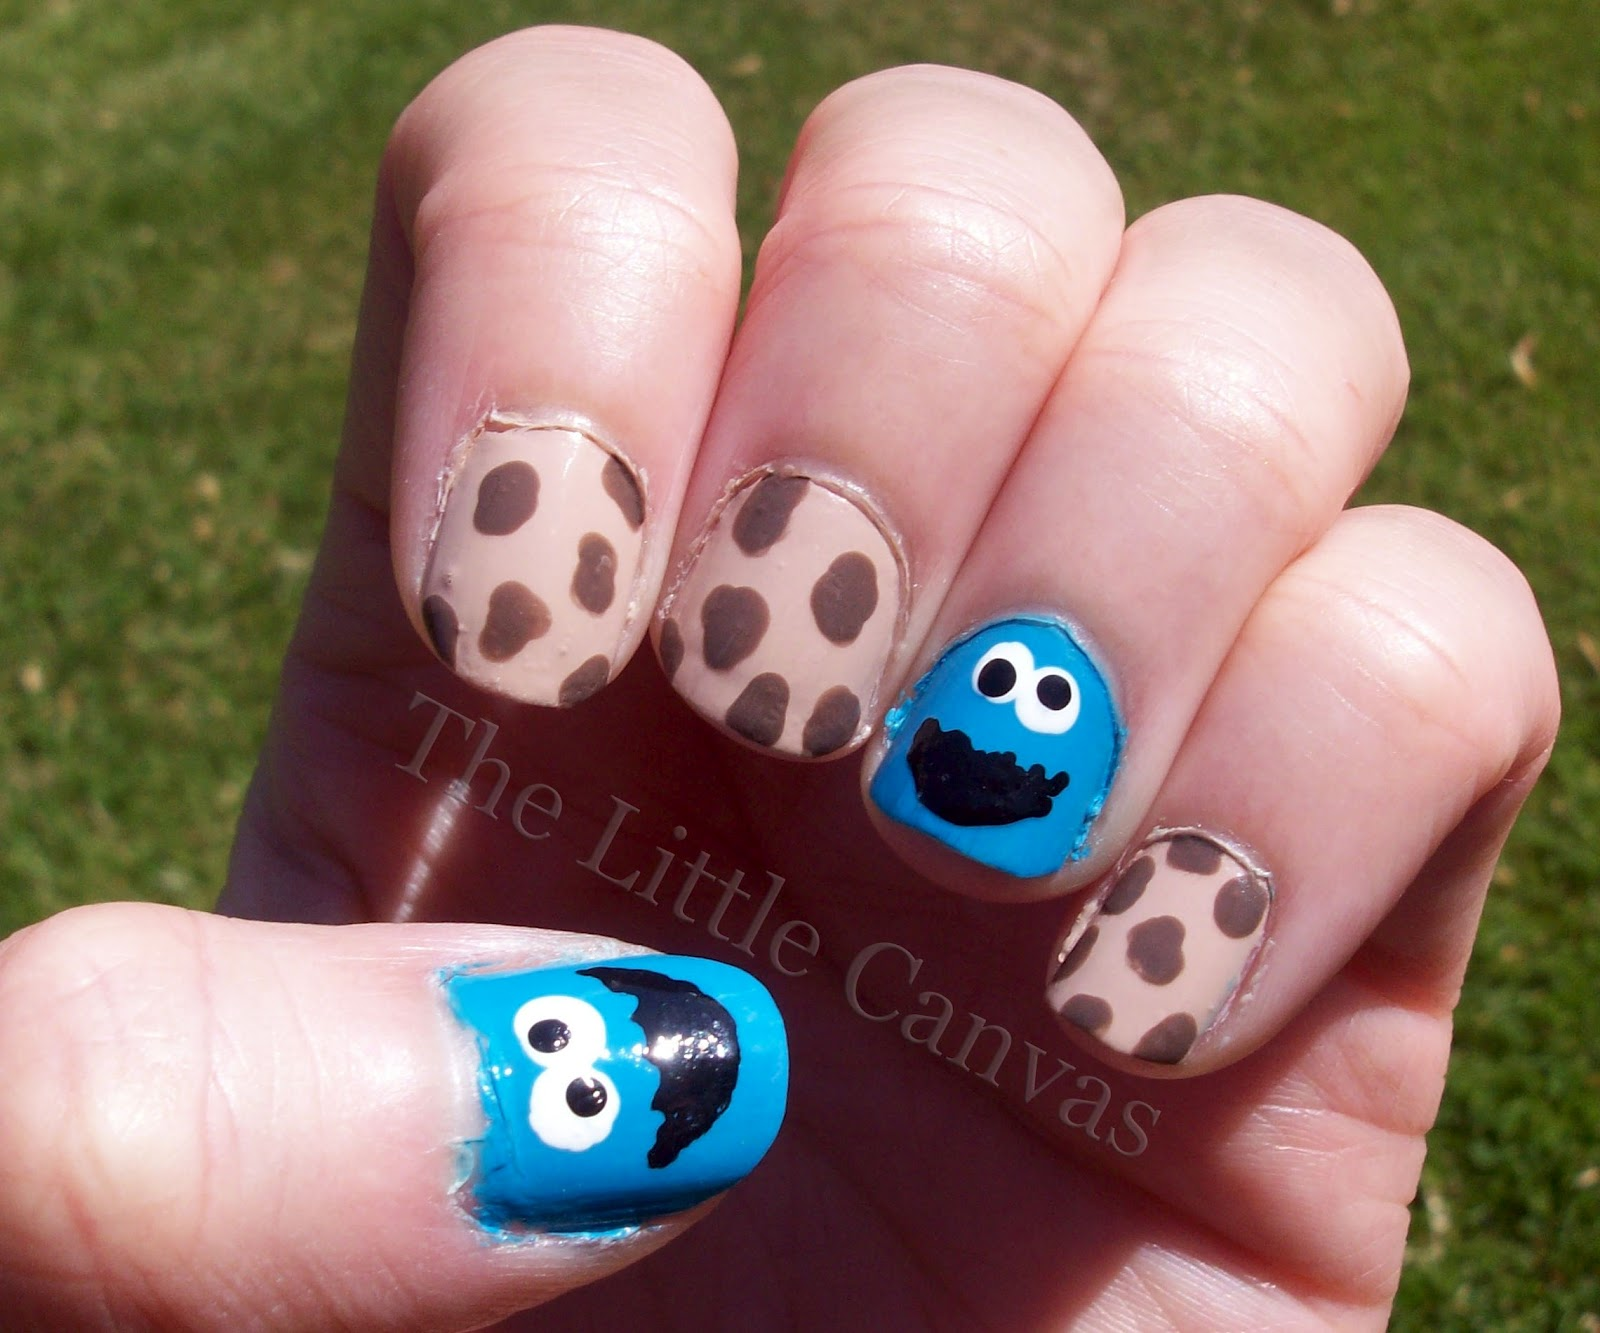 have seen on other blogs and youtube cookie monster nails so i figured